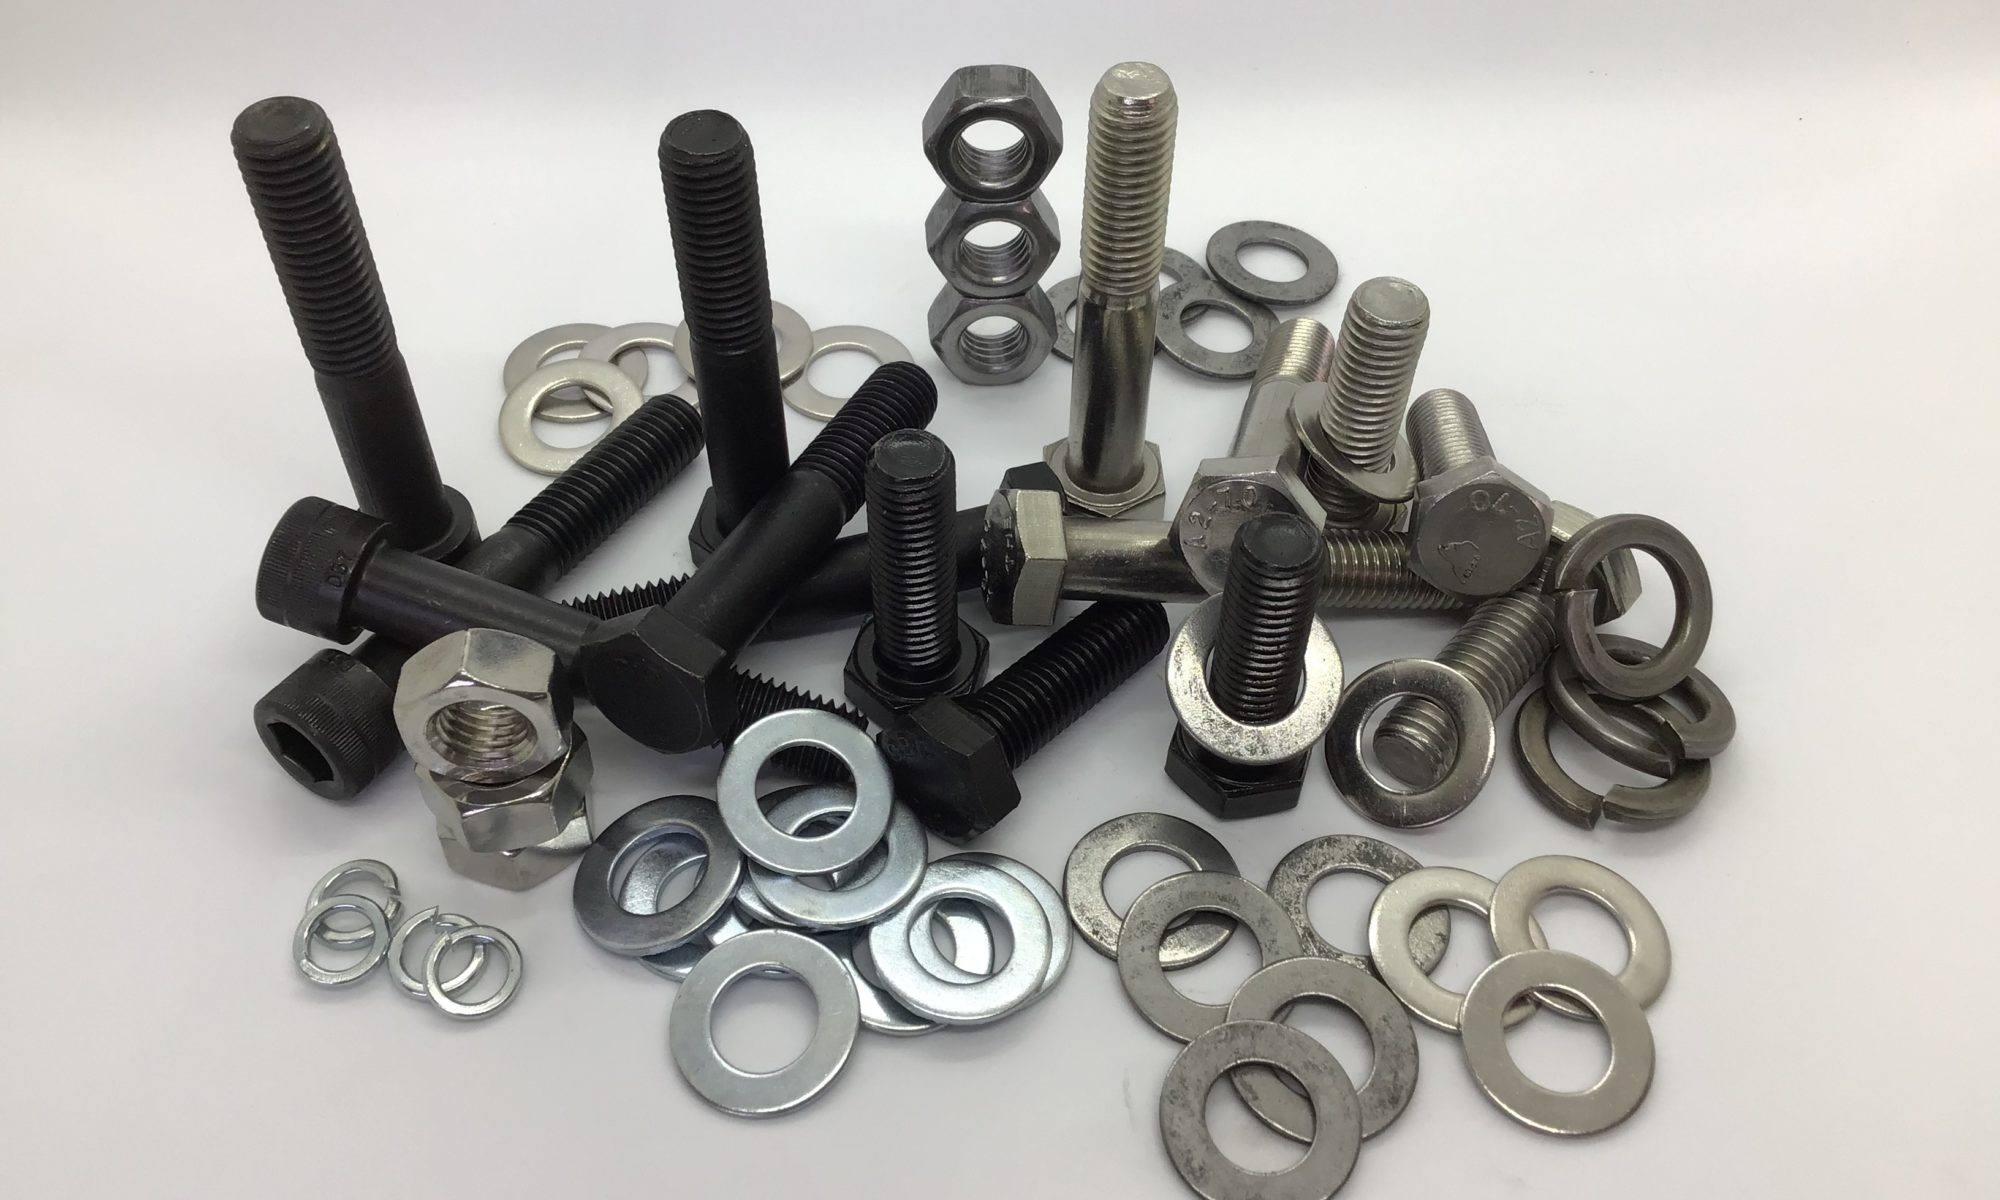 RB Fasteners (Pty) Ltd